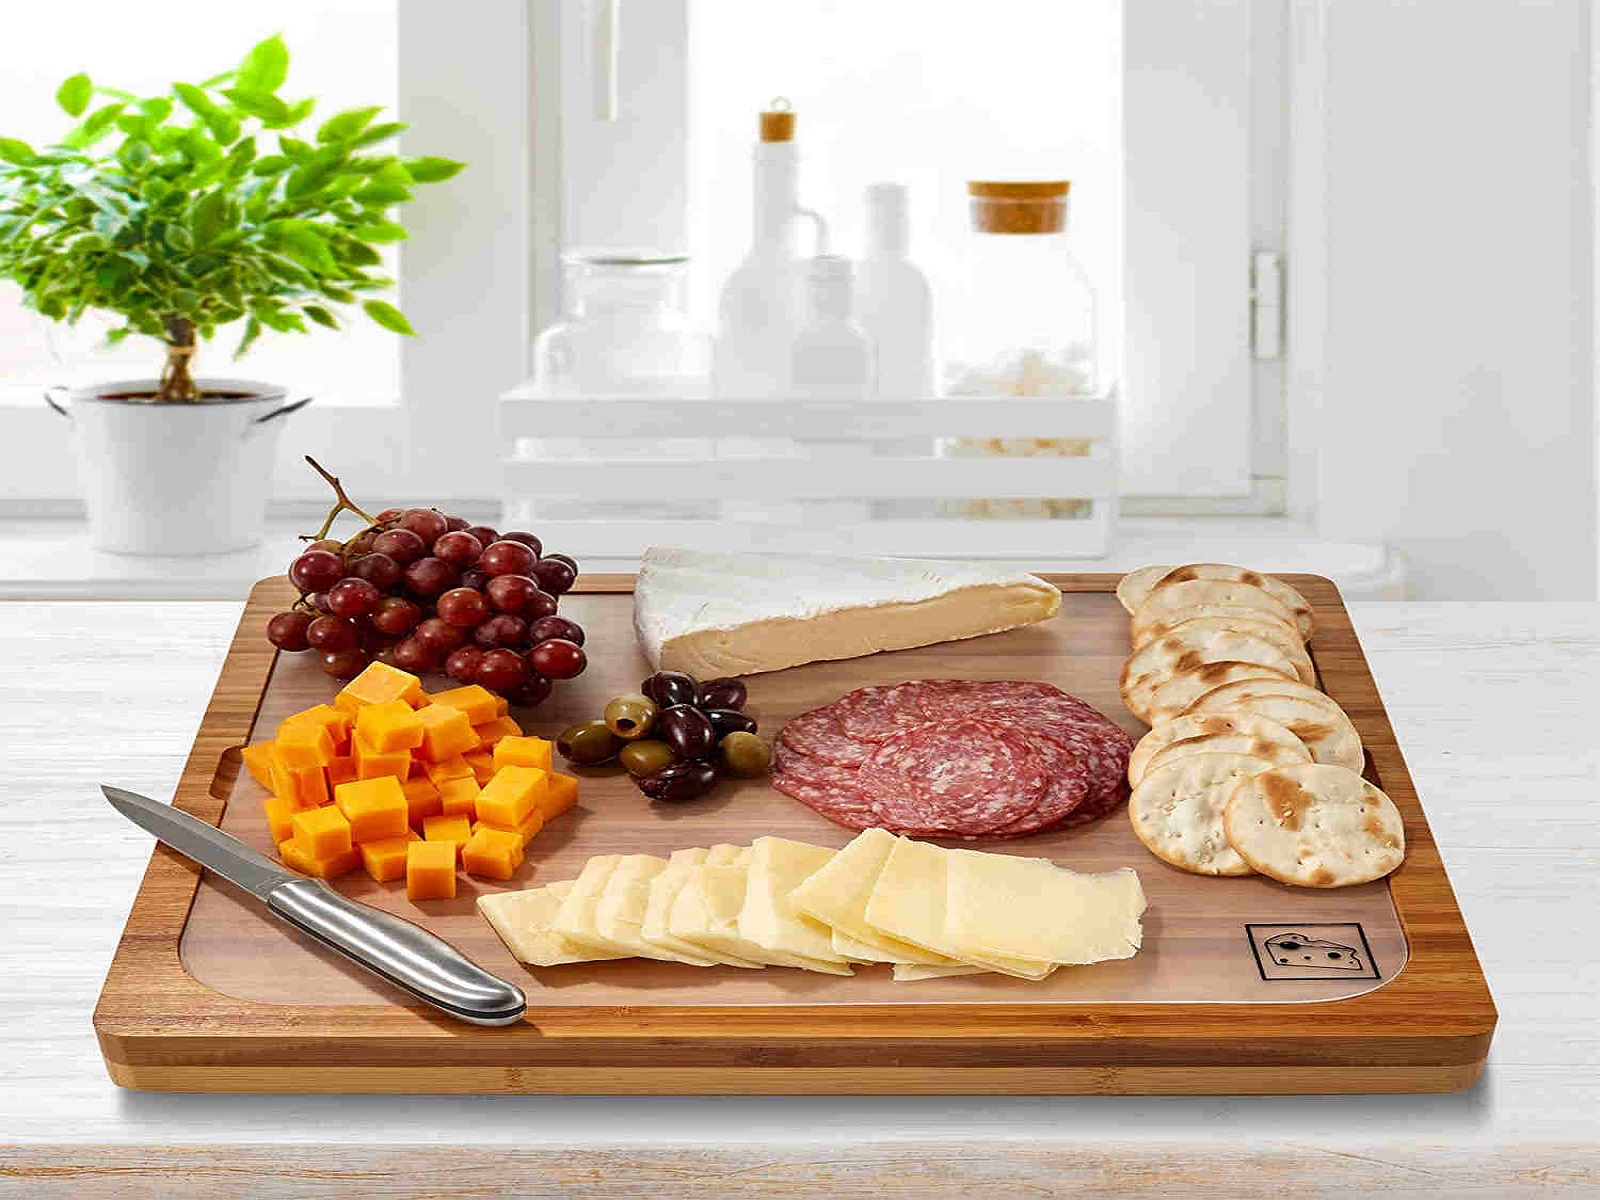 A wooden cutting board with fruits and meat